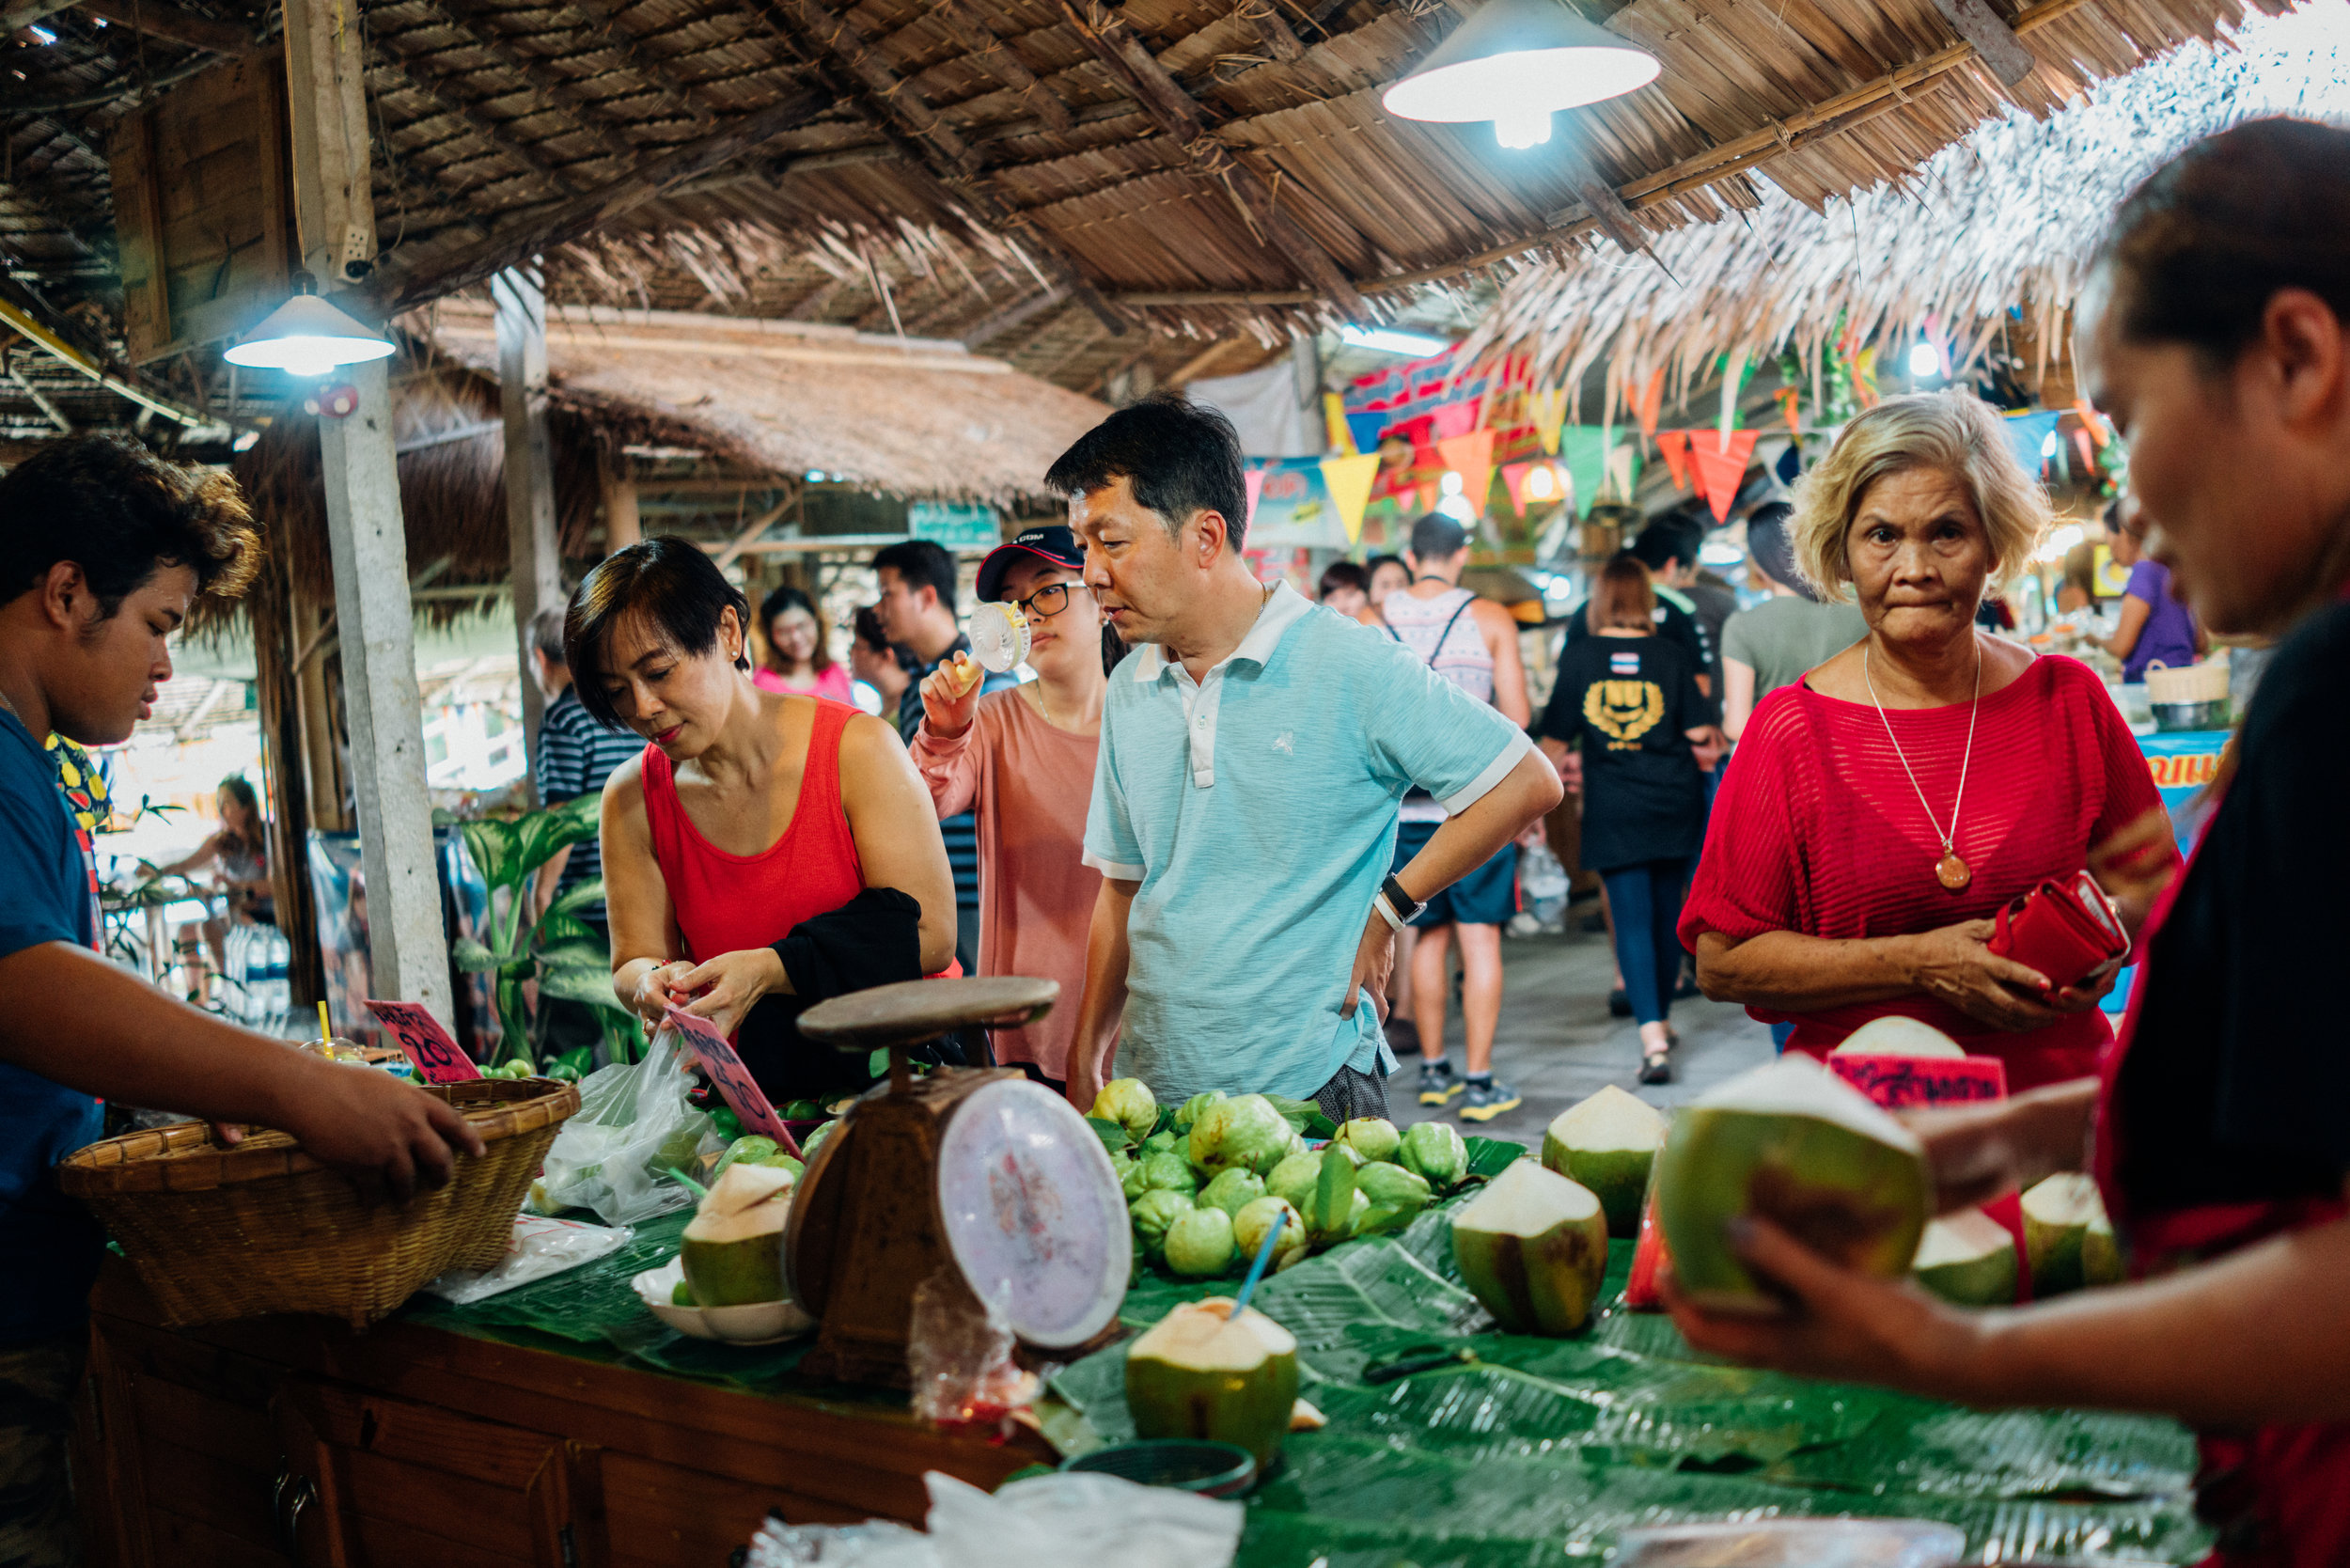 Fresh coconut water is always refreshing on a hot day, pictured here at Khlong Lat Mayom Floating Market